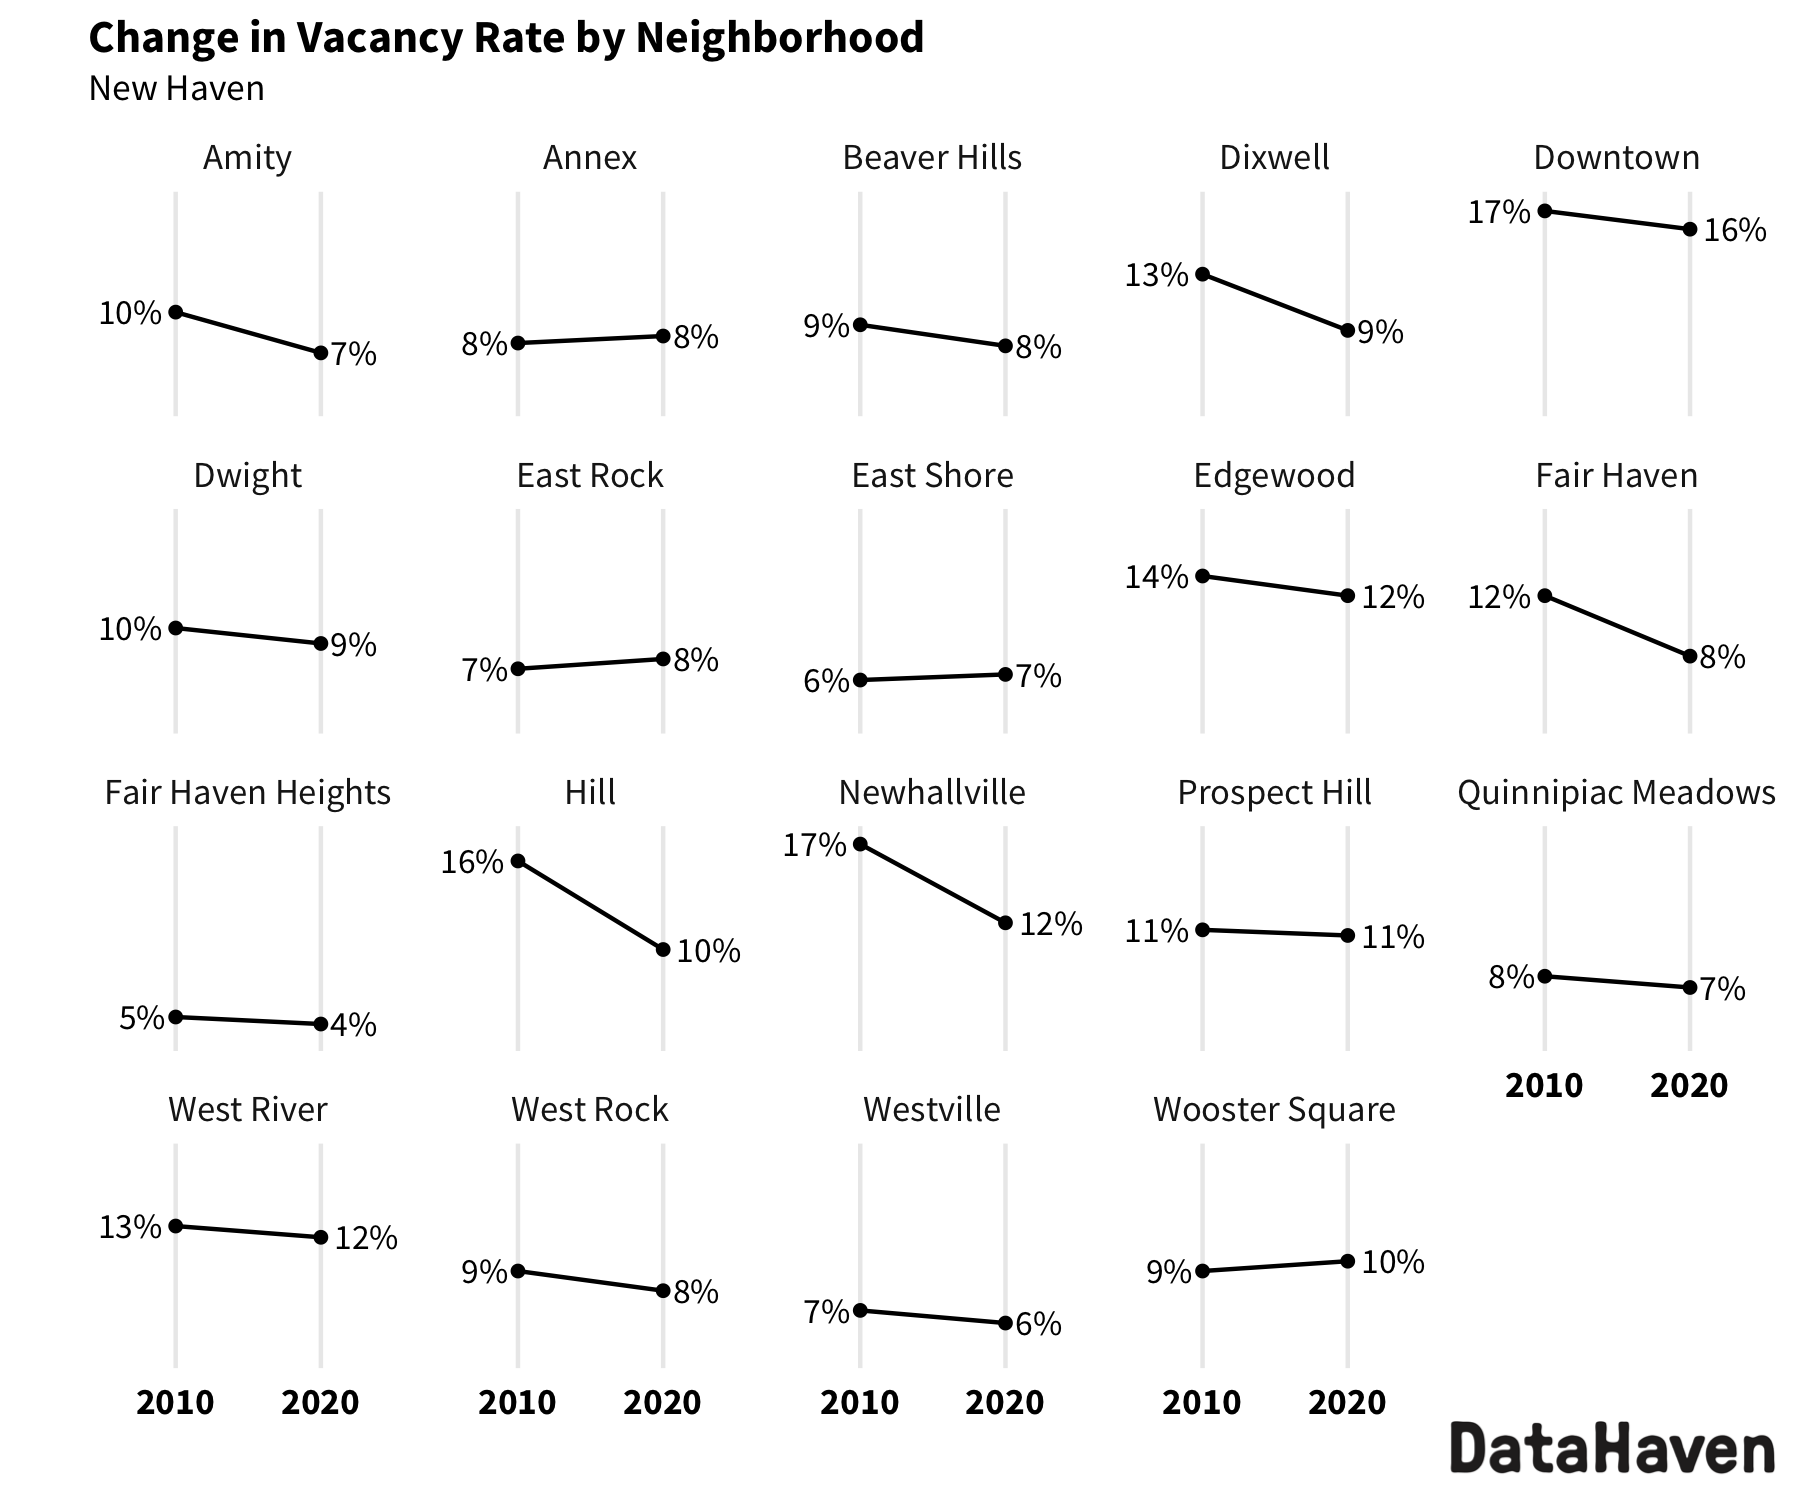 New Haven change in vacancy rate from 2010 to 2020 Census by neighborhood